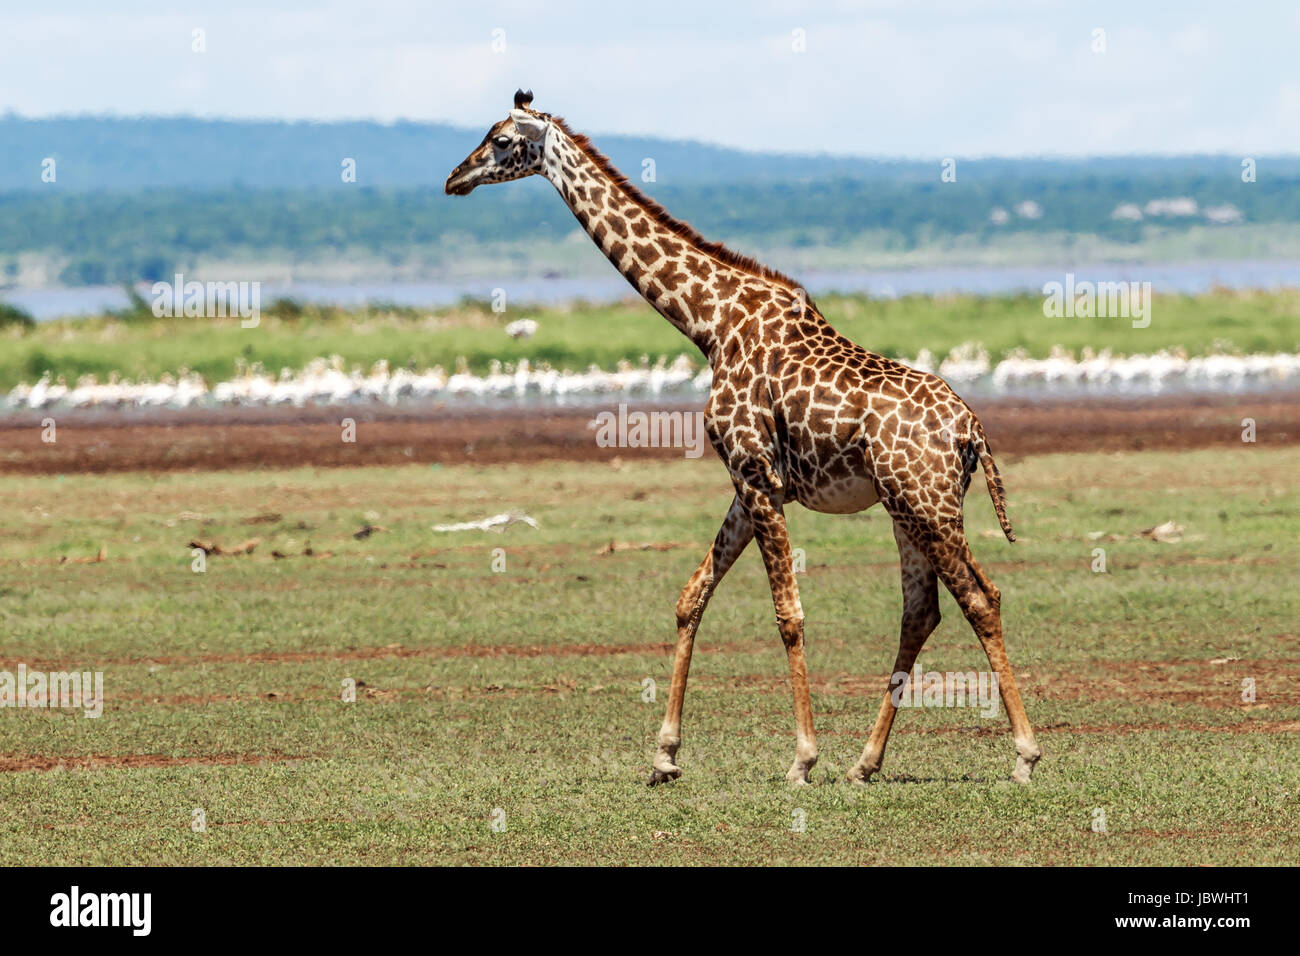 A Masai Giraffe walking away - Stock Image